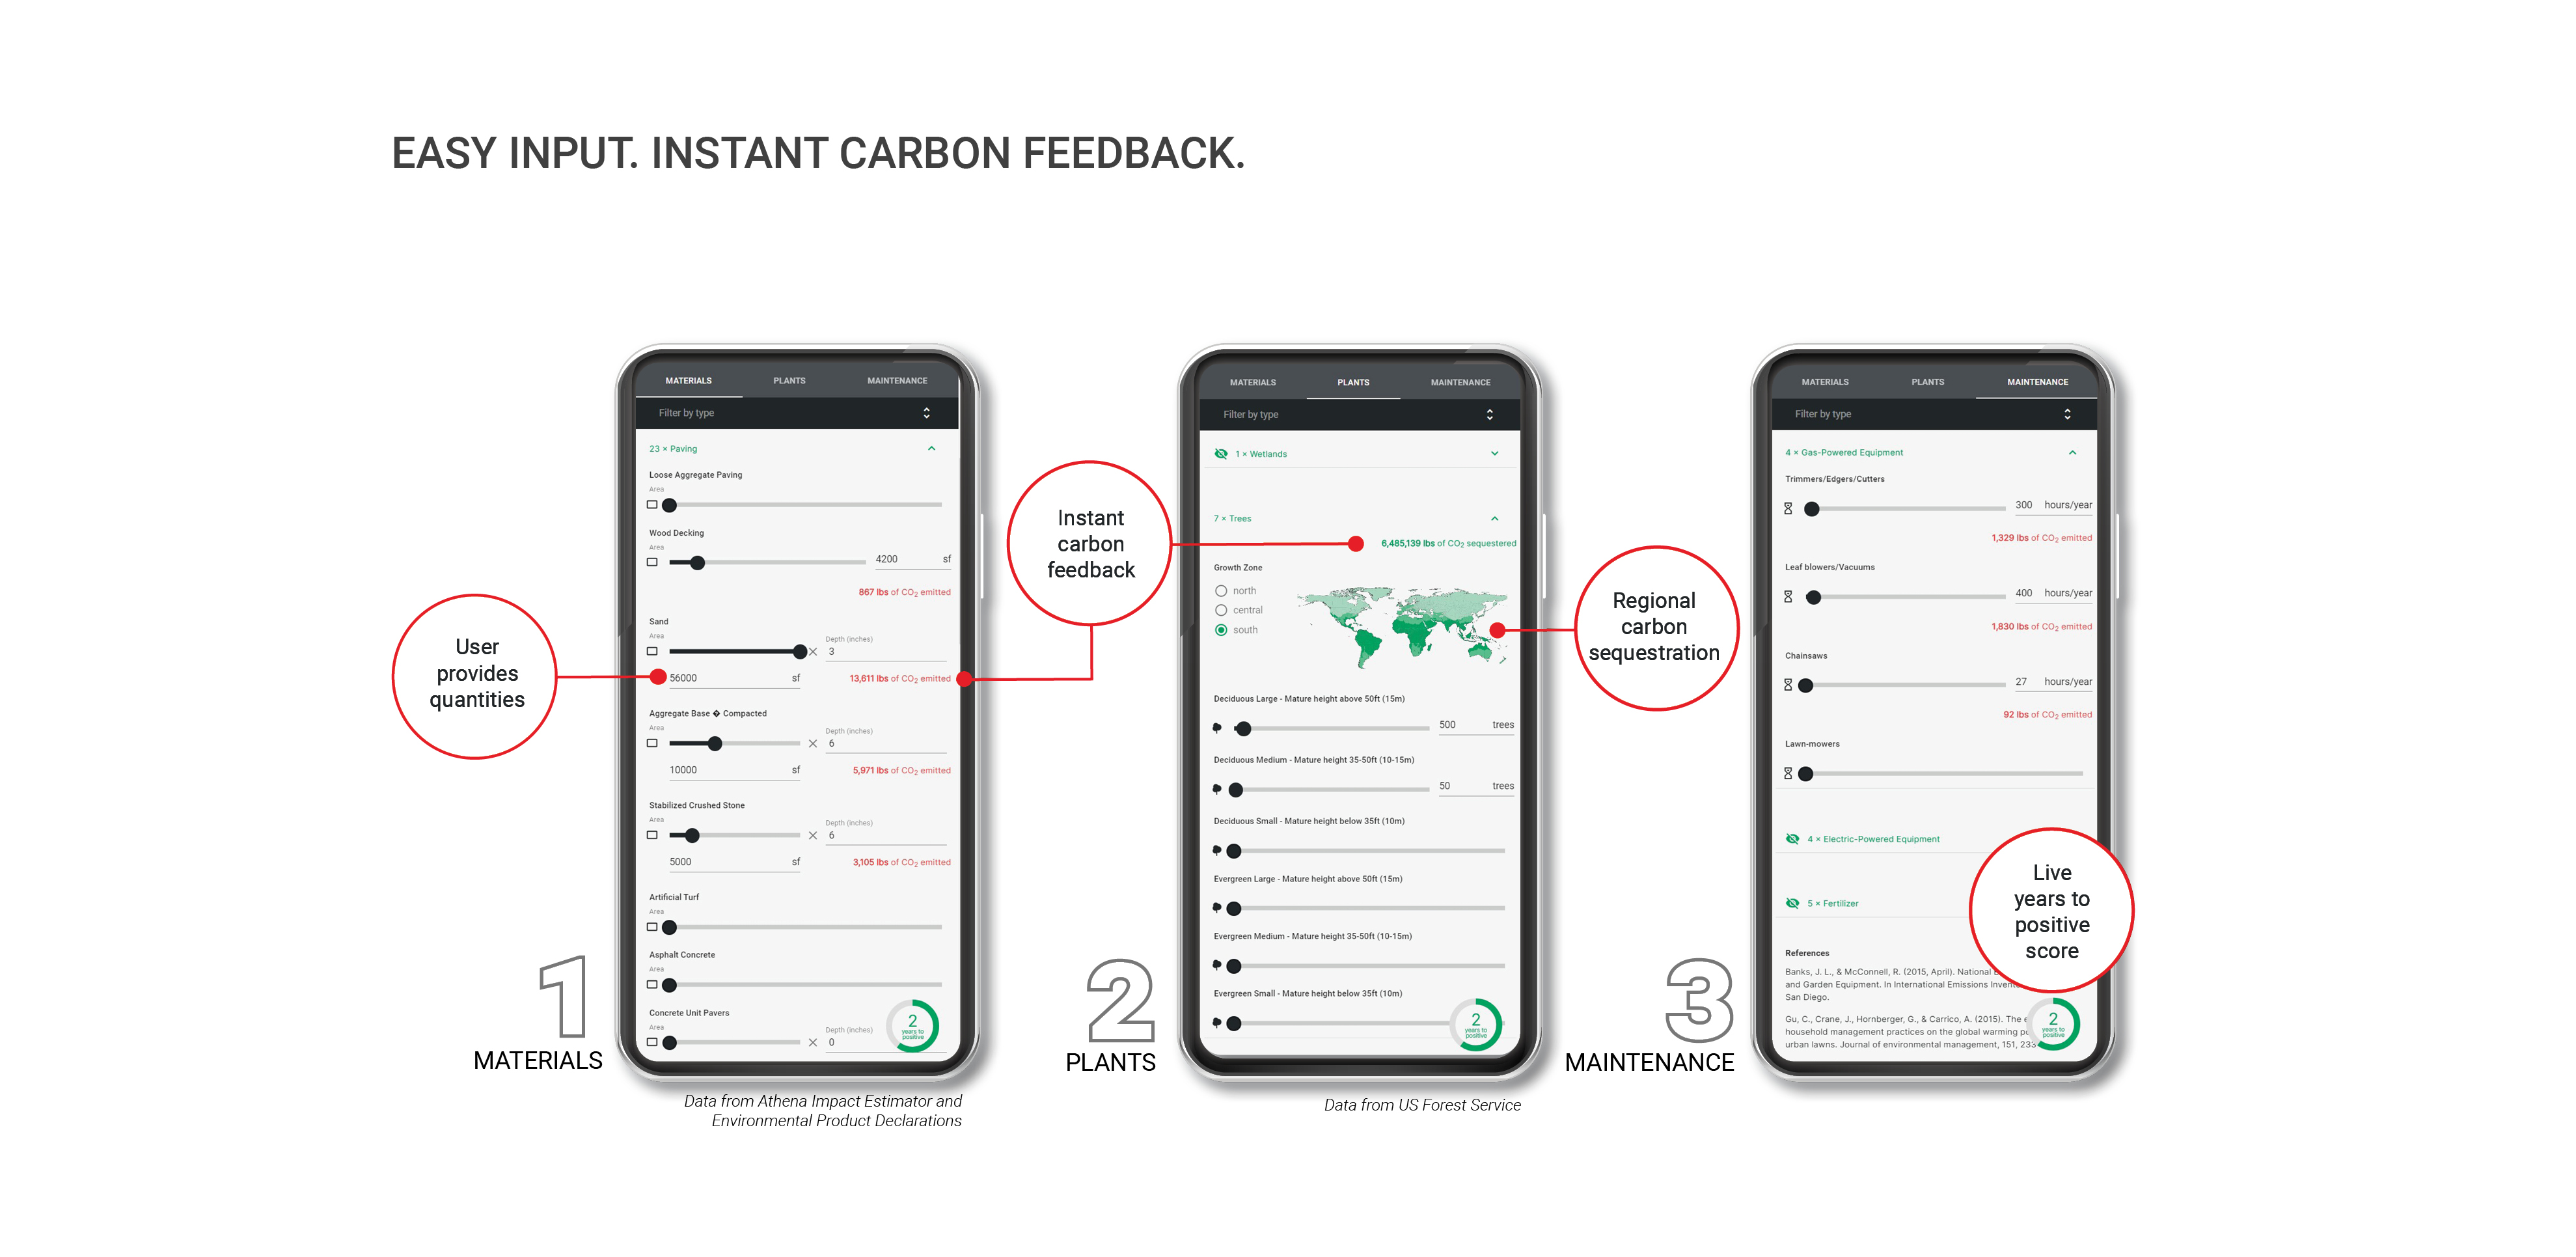 Easy Input. Instant Carbon Feedback.